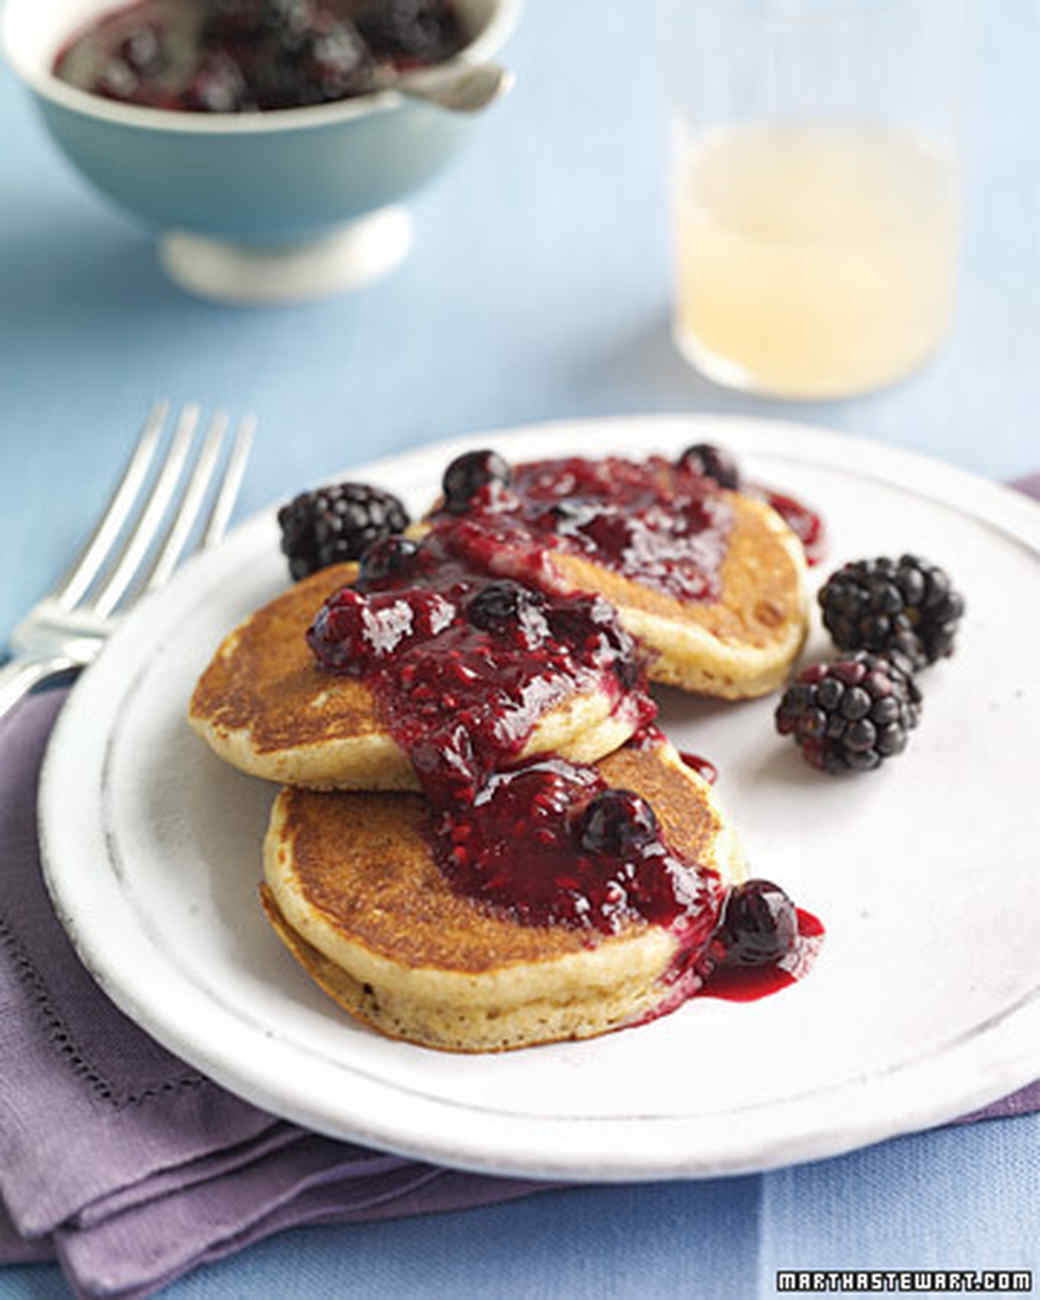 Whole-Wheat Pancakes with Berry Compote